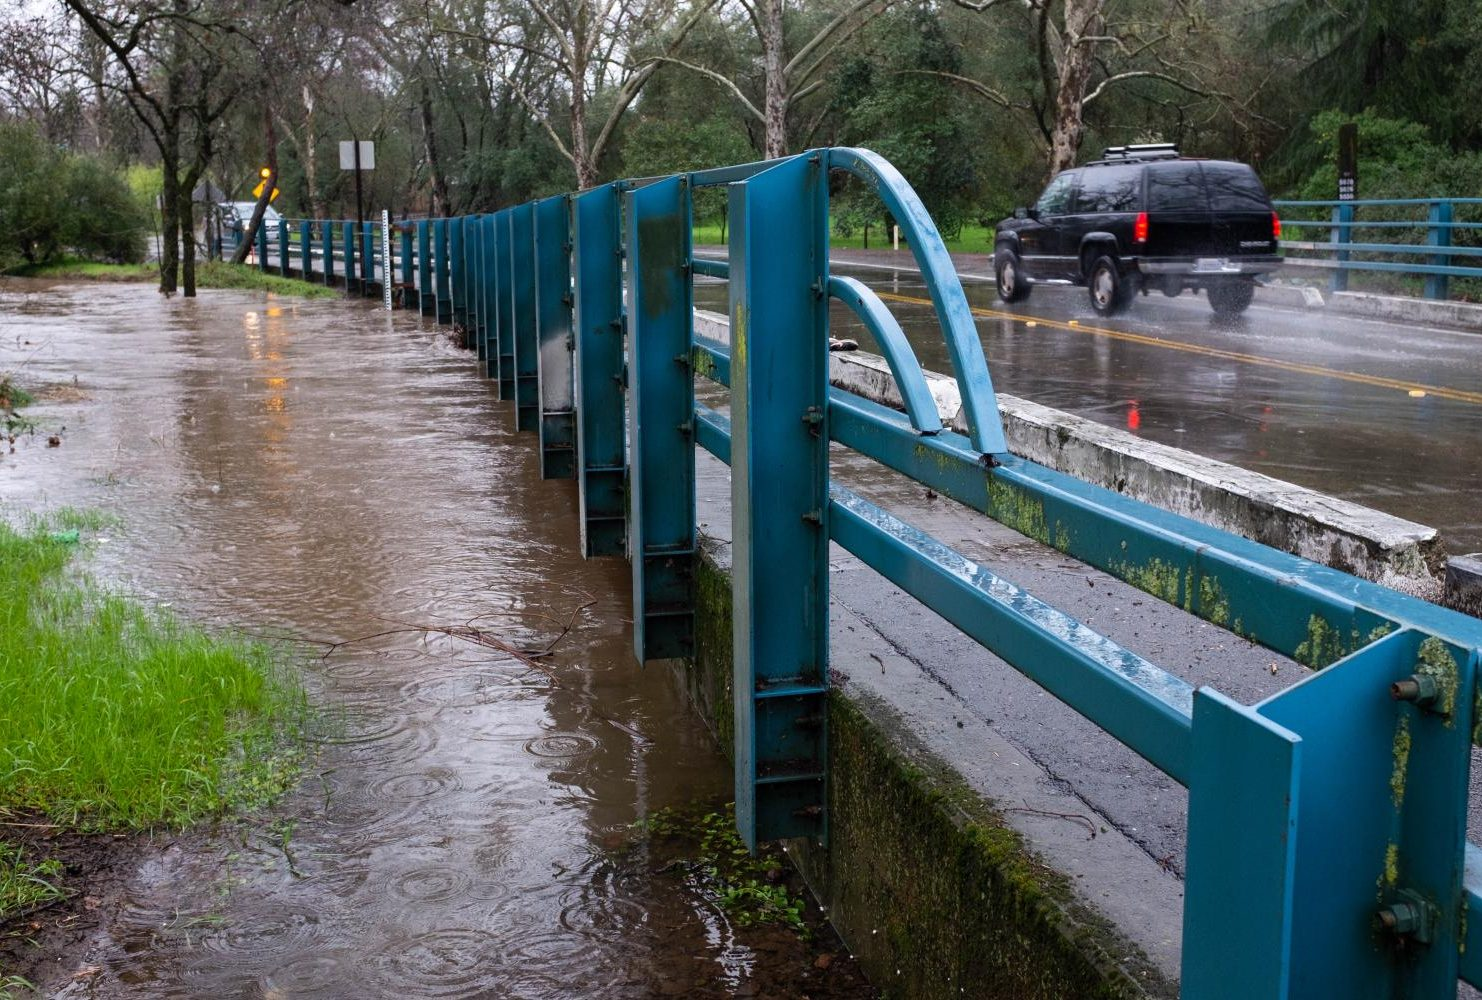 Heavy rains in Sacramento caused the water level of Arcade Creek to rise nearly up to the bridge line at American River College on Feb. 26, 2019. (Photo by Patrick Hyun Wilson)